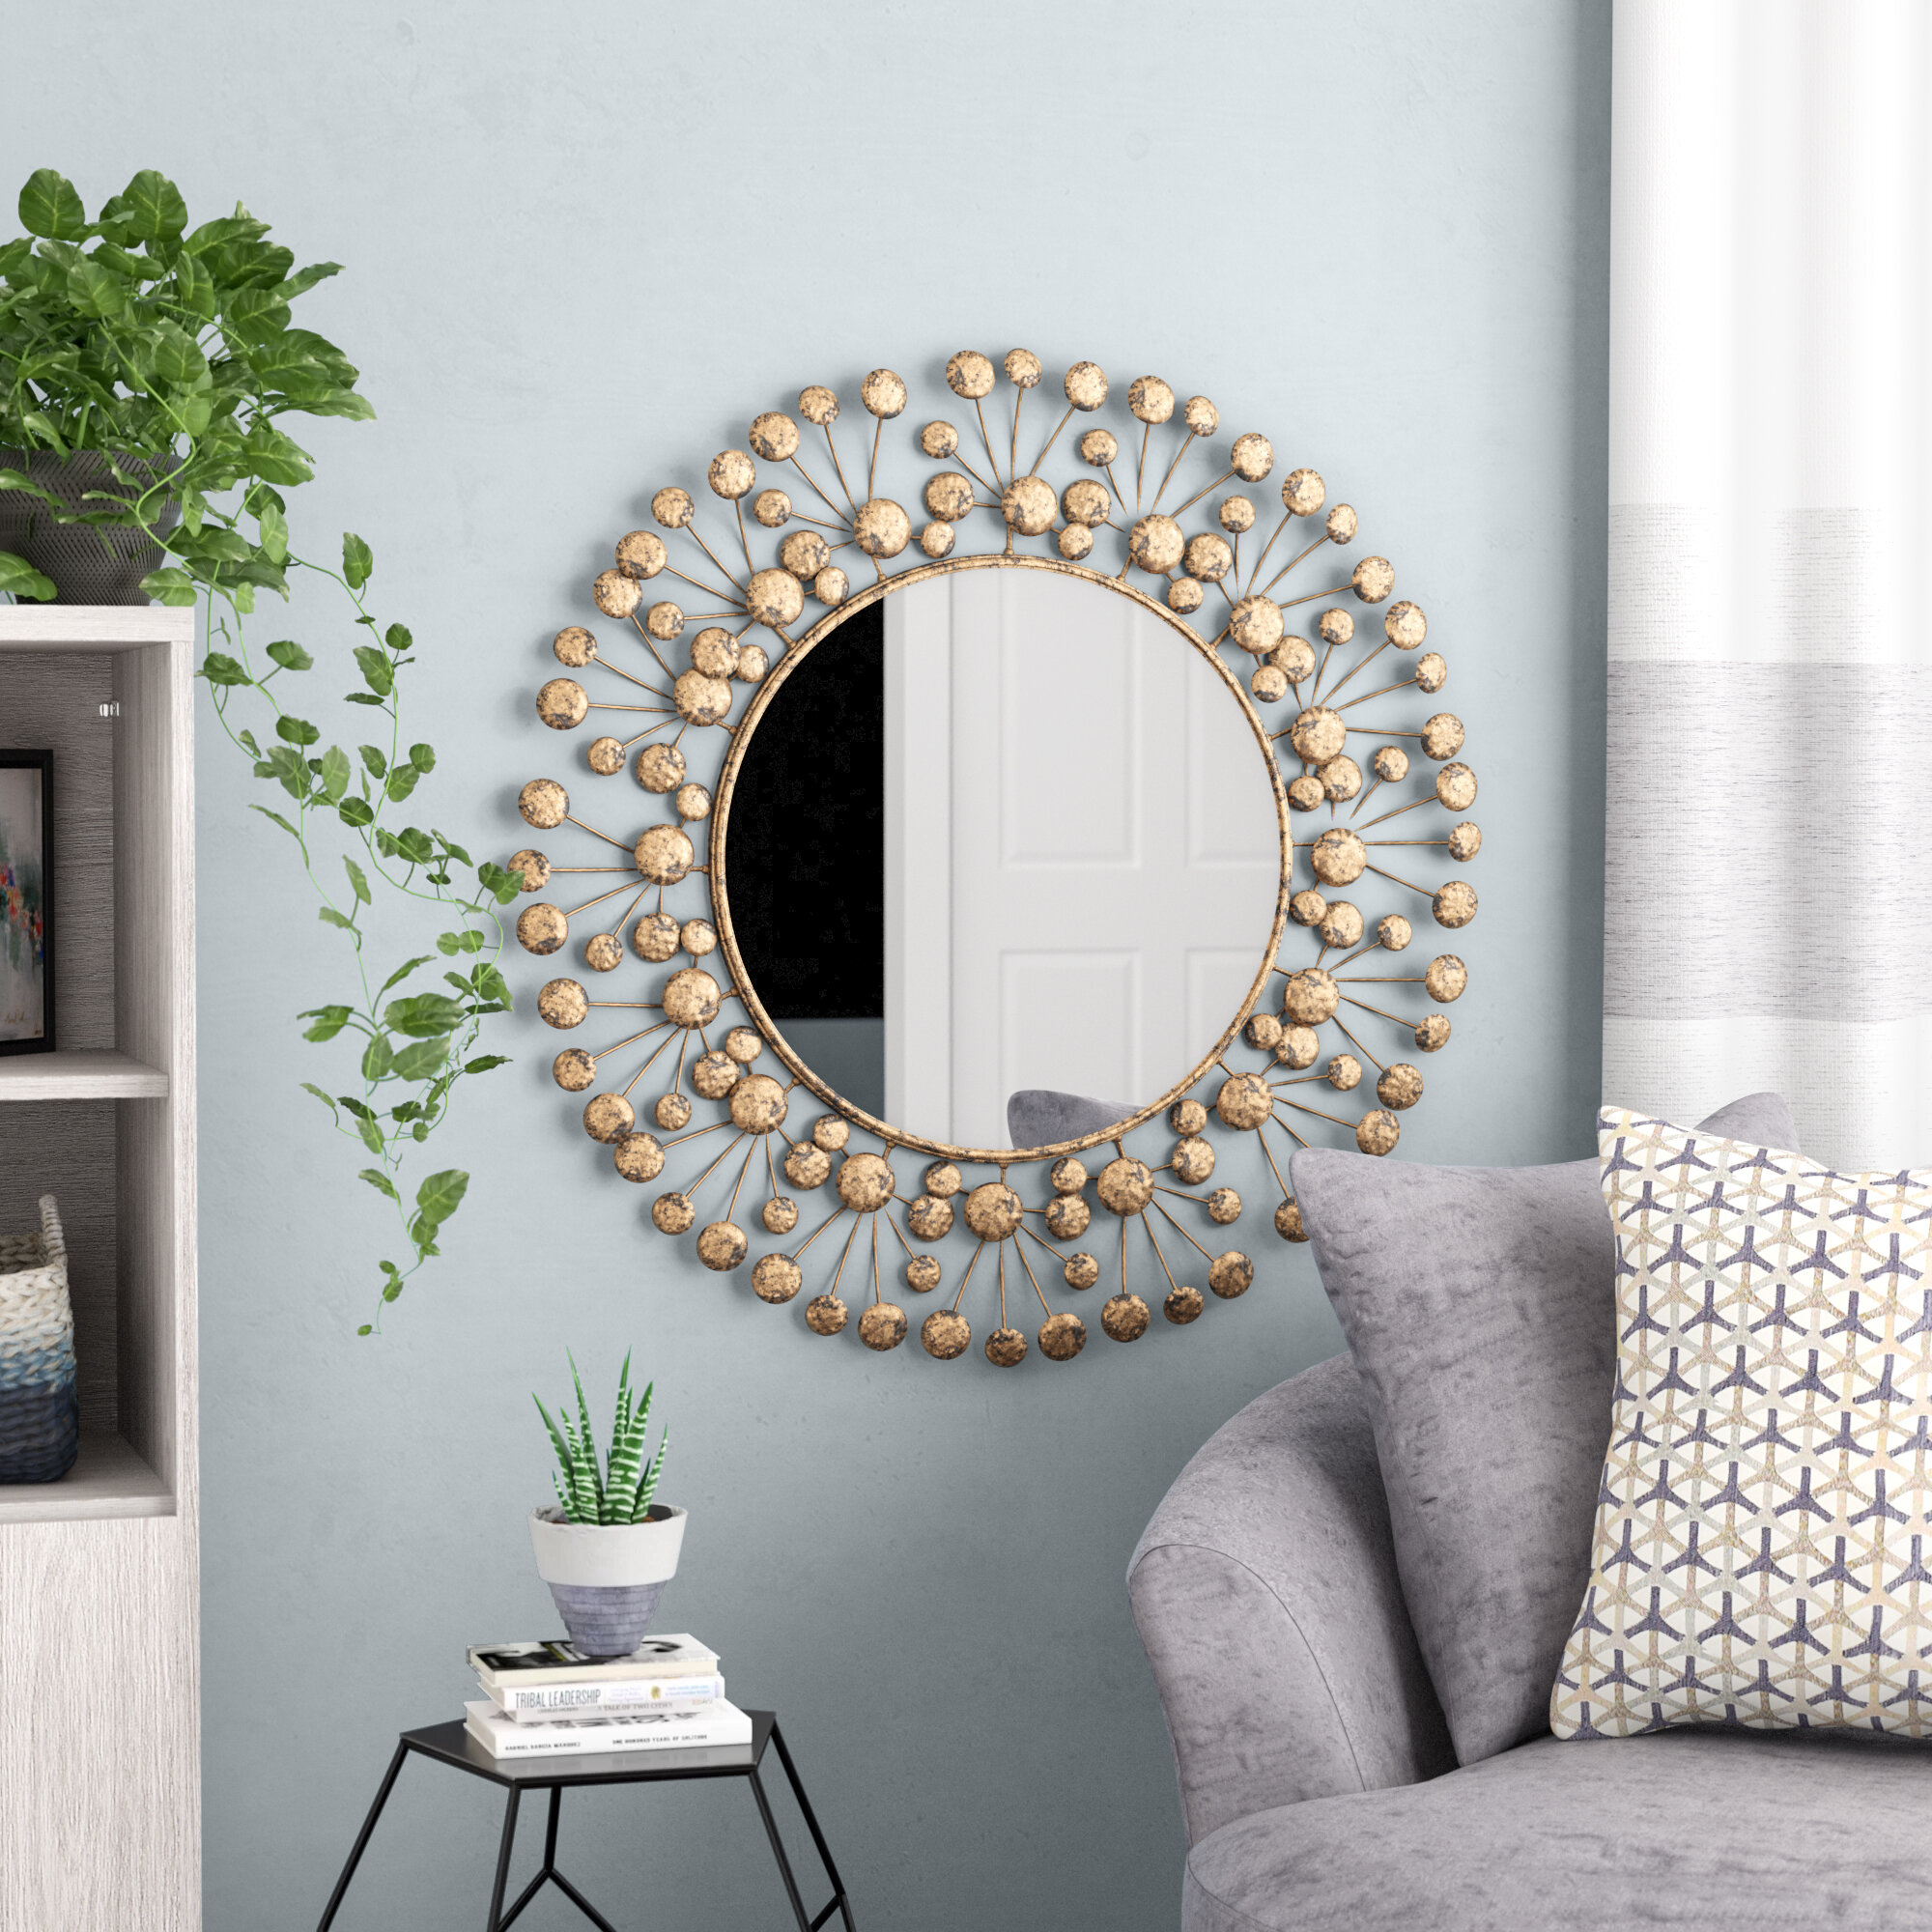 Eisenbarth Oversized Decorative Round Wall Mirror pertaining to Kentwood Round Wall Mirrors (Image 7 of 30)